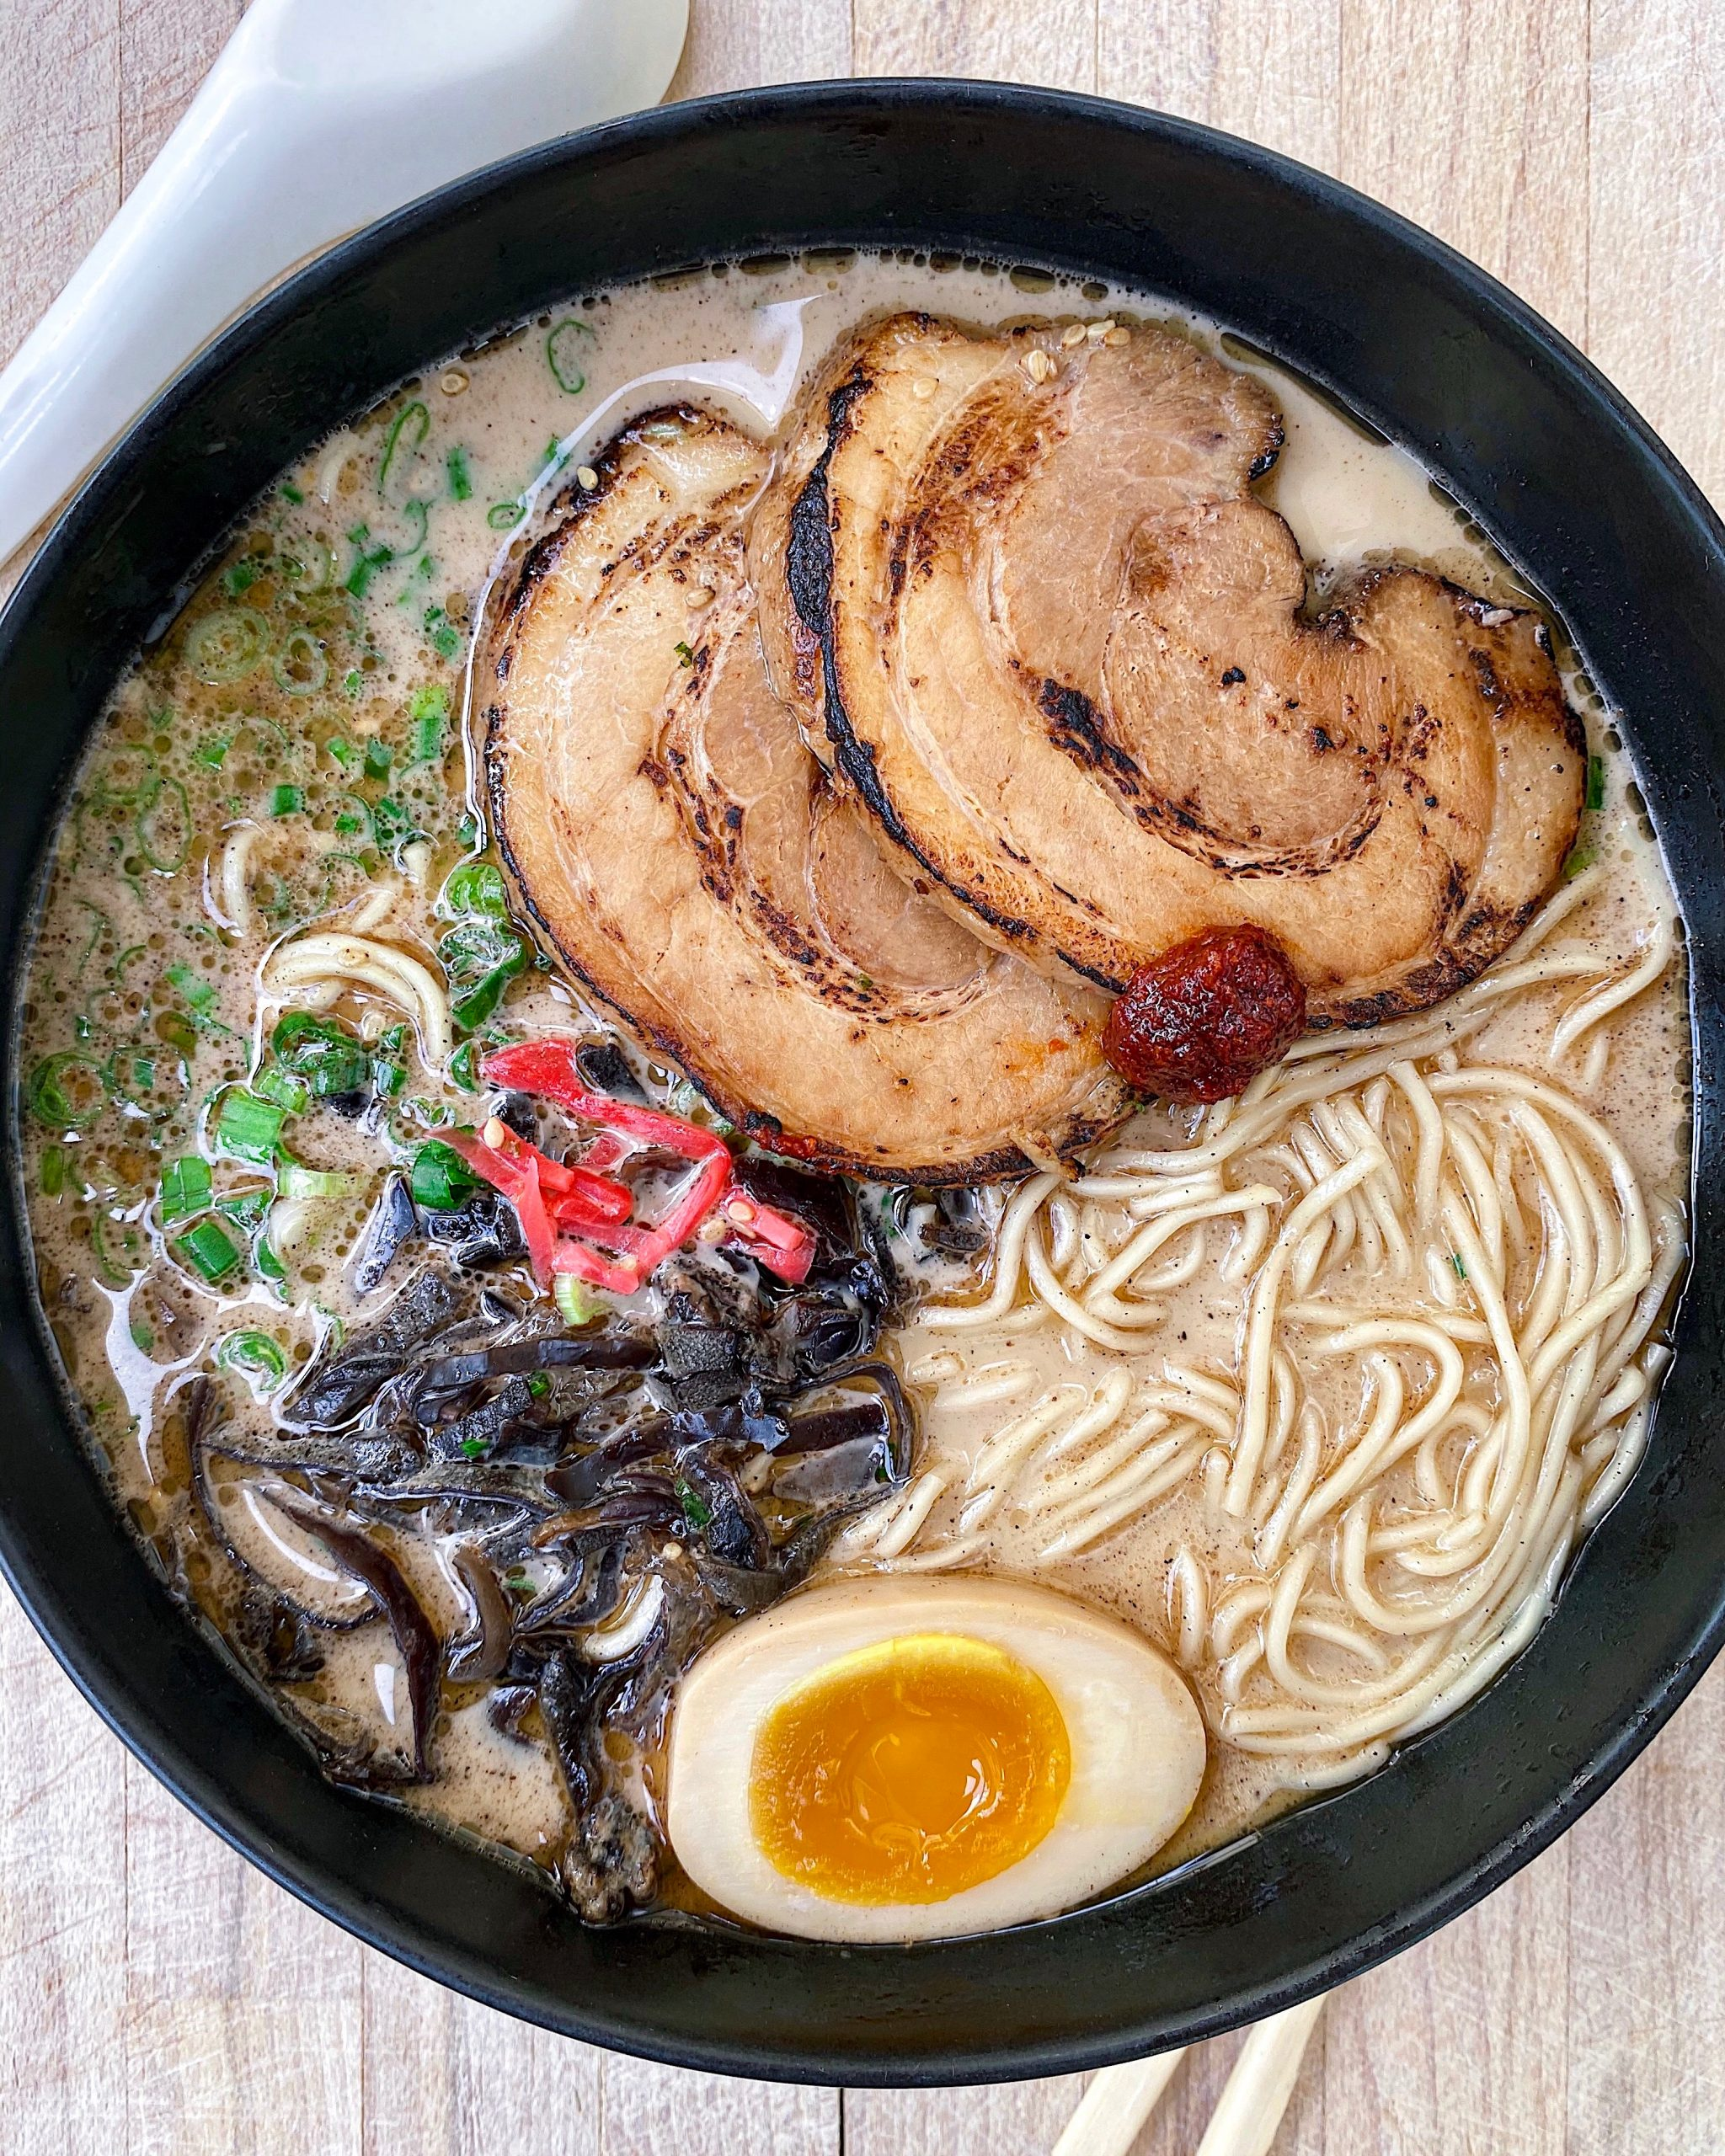 BGO Ramen from Ramen512 in Austin, TX